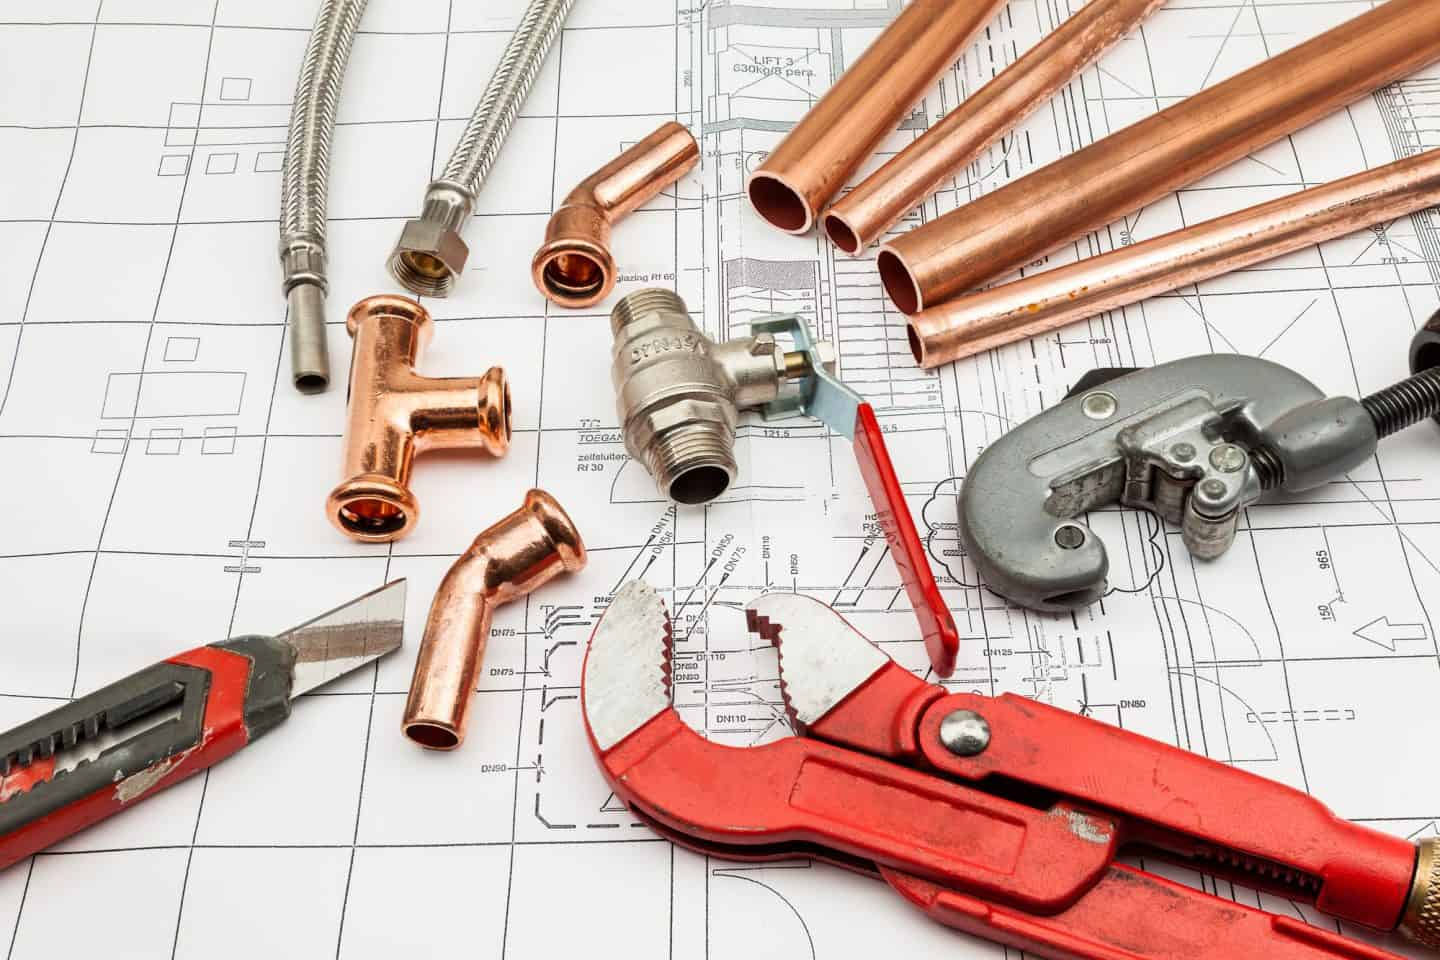 Homeowners who aim to manage less complex problems on their own need the right tools. The following are 7 plumbing tools every DIY homeowner should have